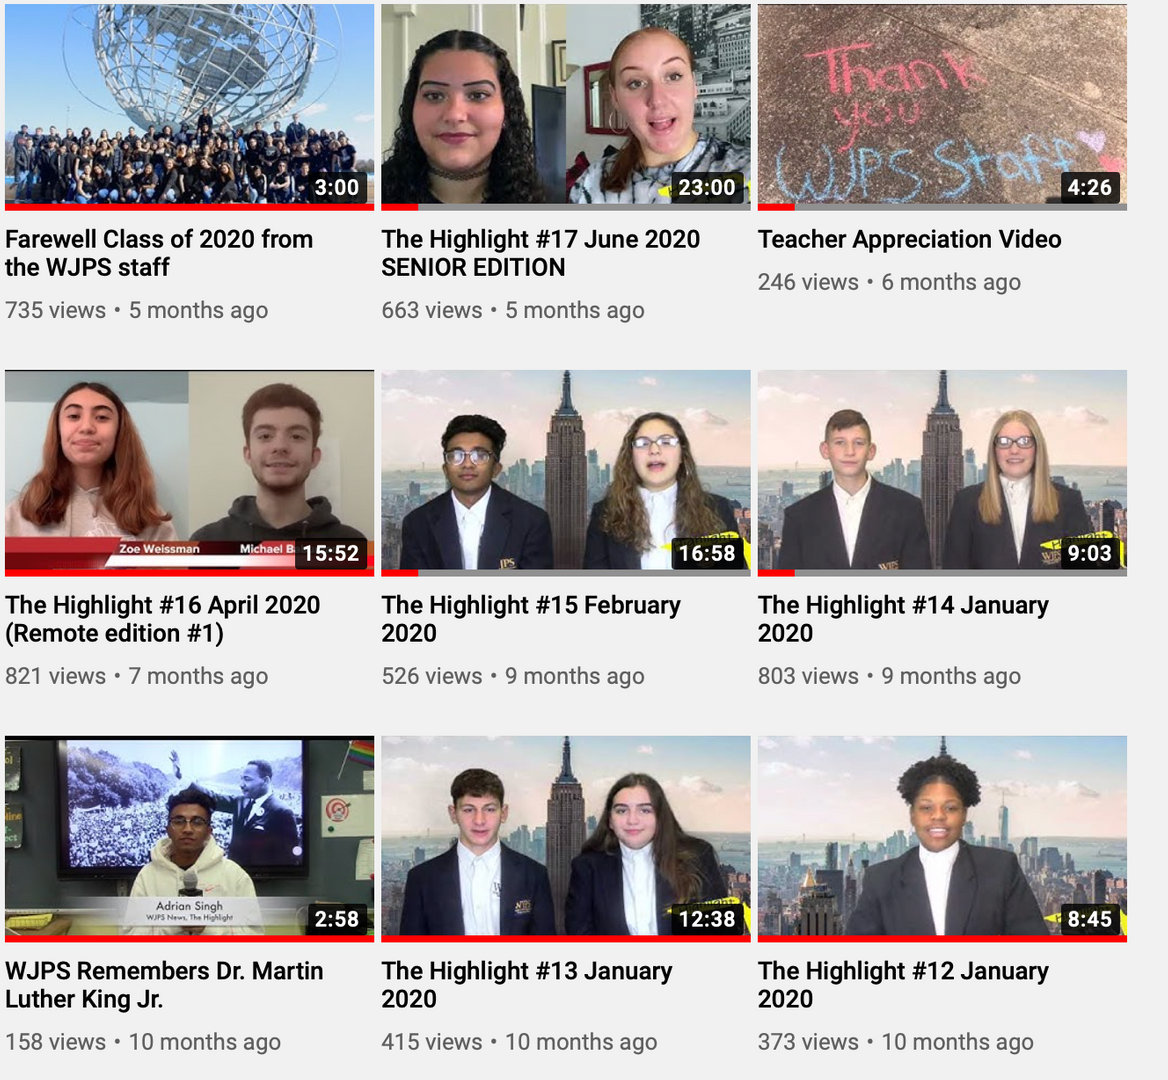 montage of various student news anchors